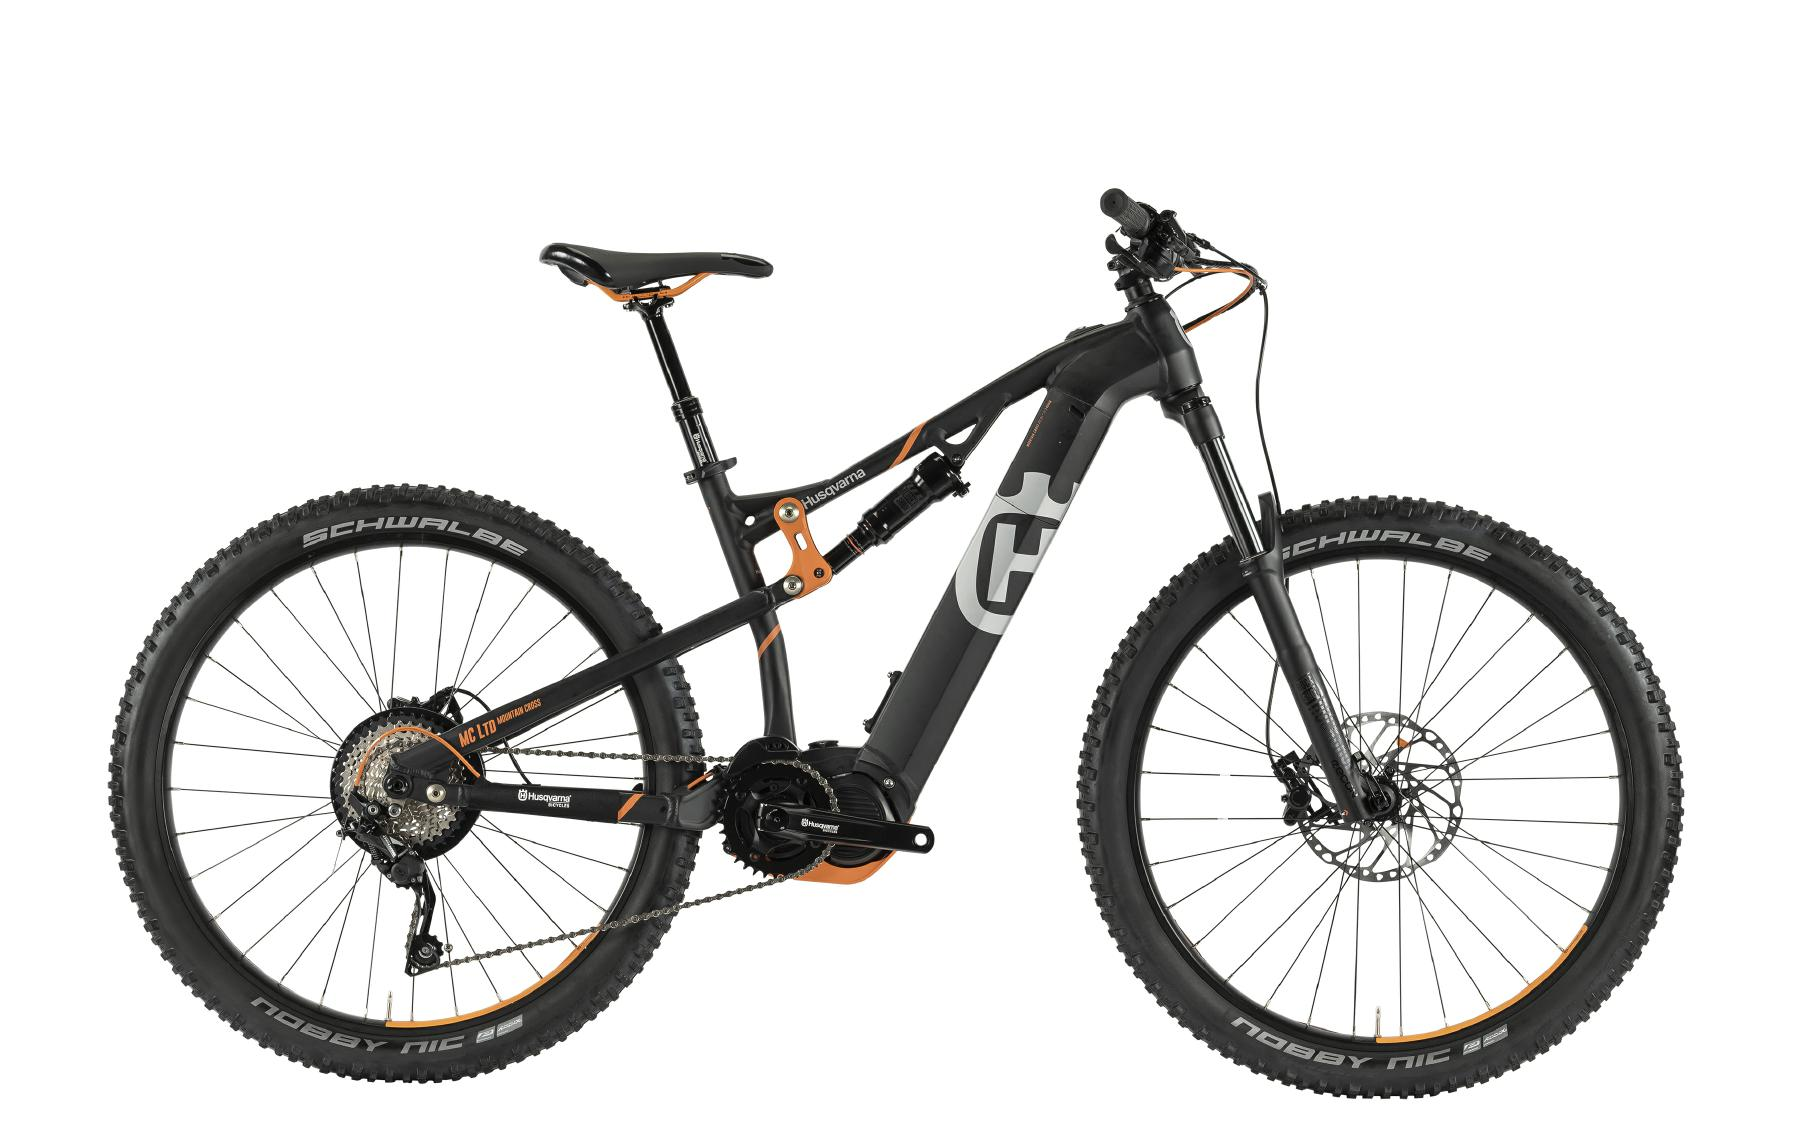 Husqvarna 2019 Mountain Cross Anniversary Model MC LTD - black